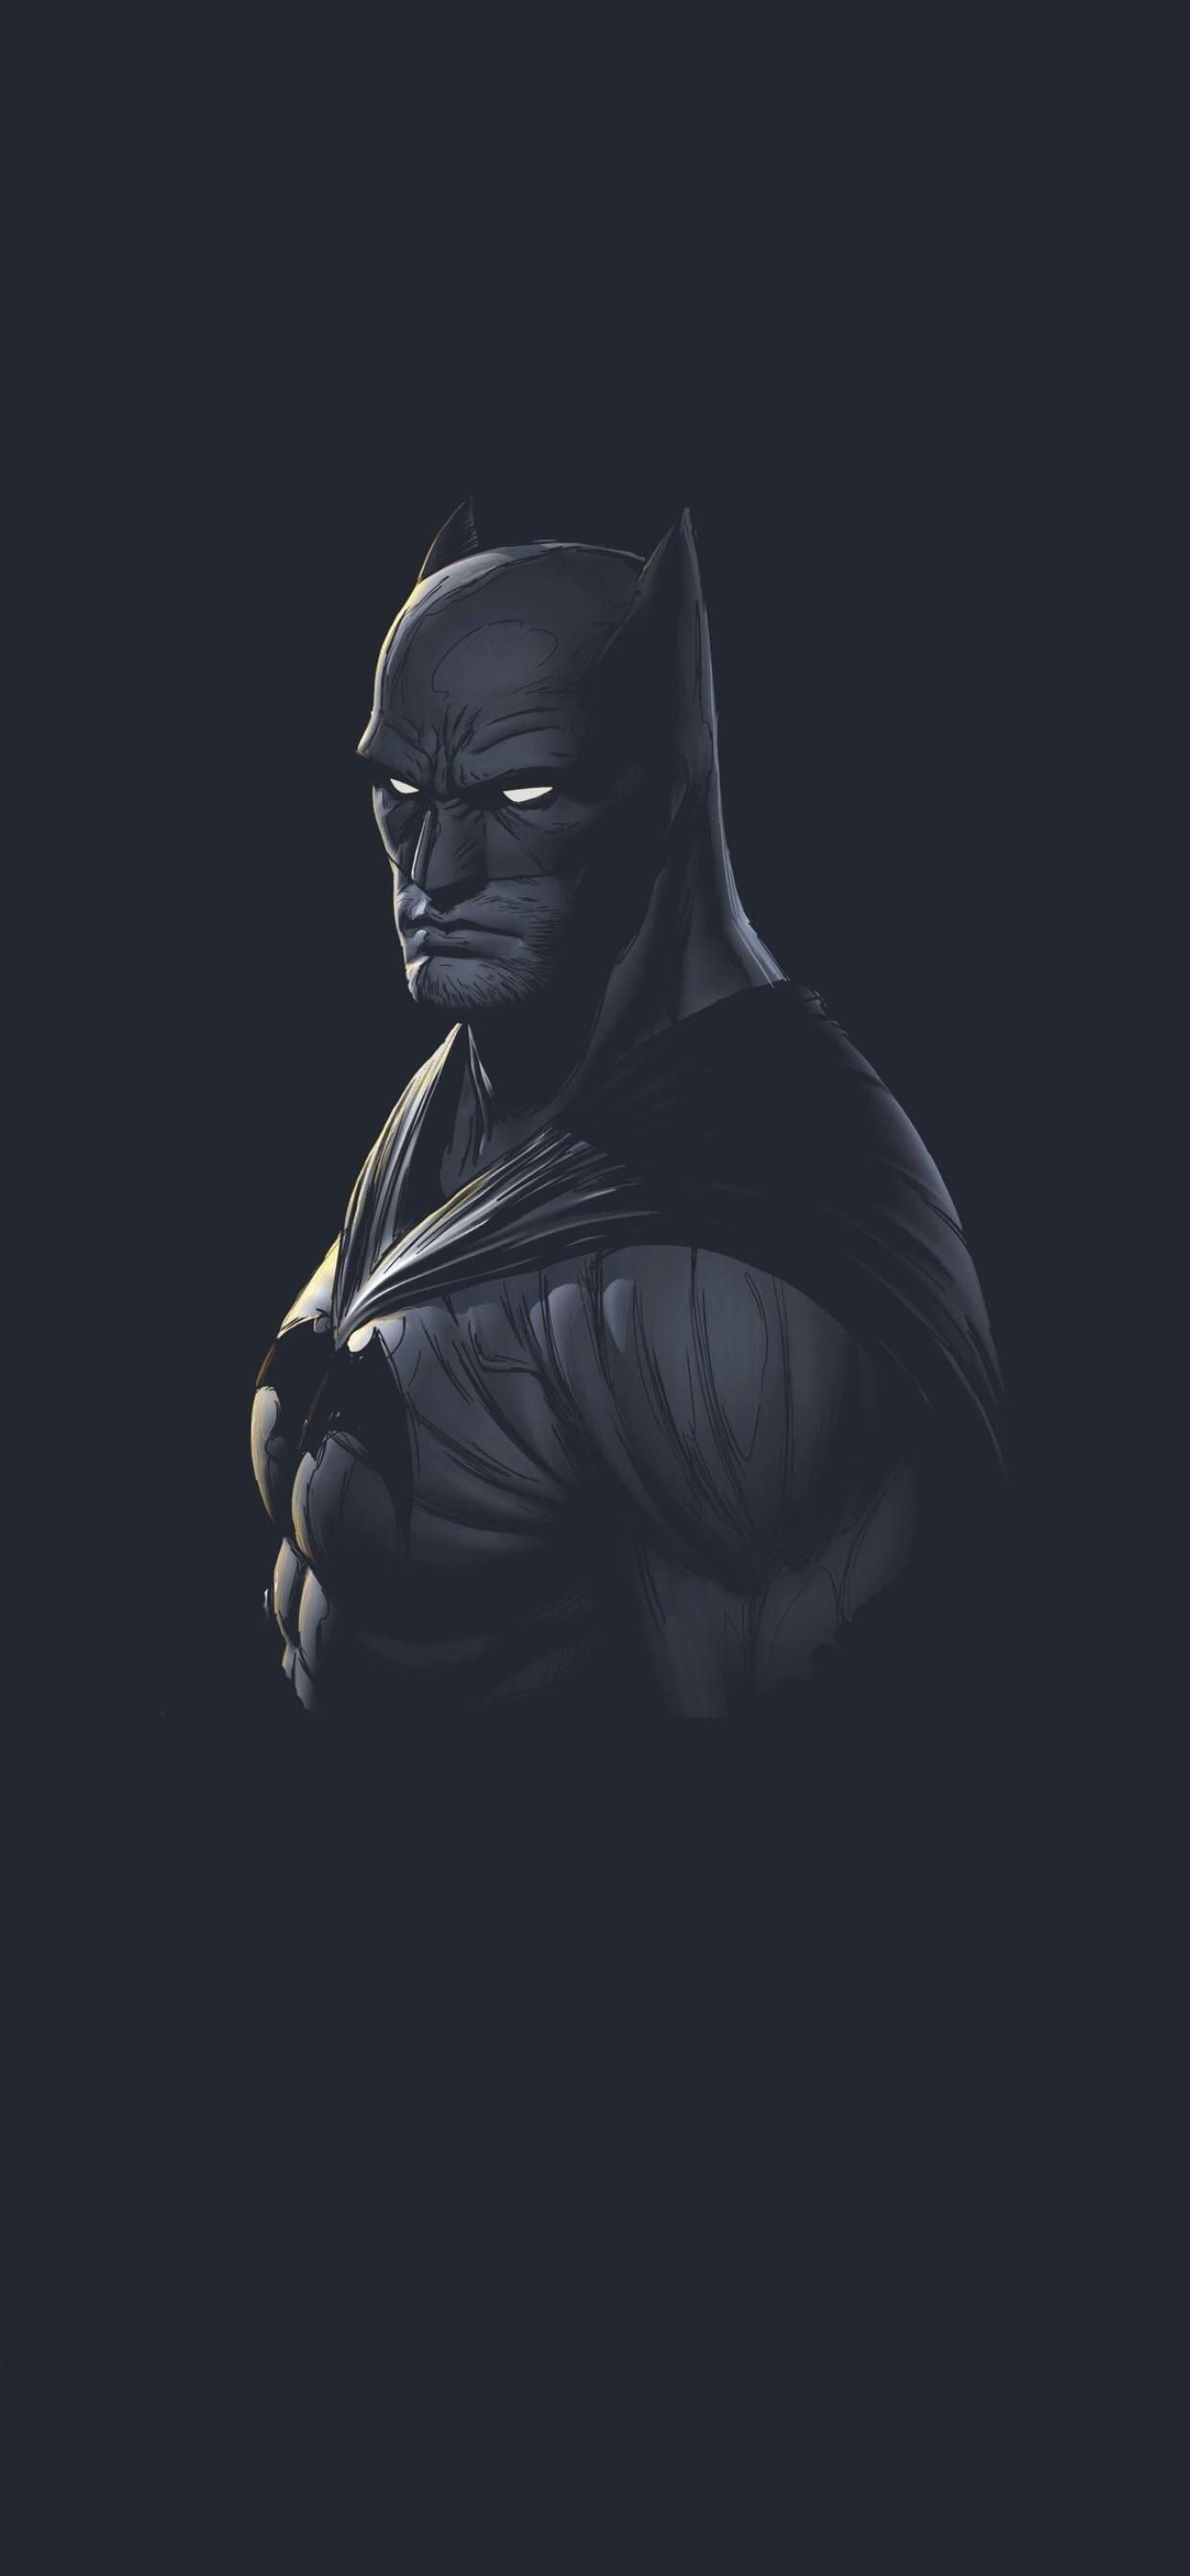 Iphone Wallpaper Black Hintergrundbildiphone Tapete Batman Wallpaper Iphone Wallpapers Iphonewallpaper4k Batman Wallpaper Batman Wallpaper Iphone Batman